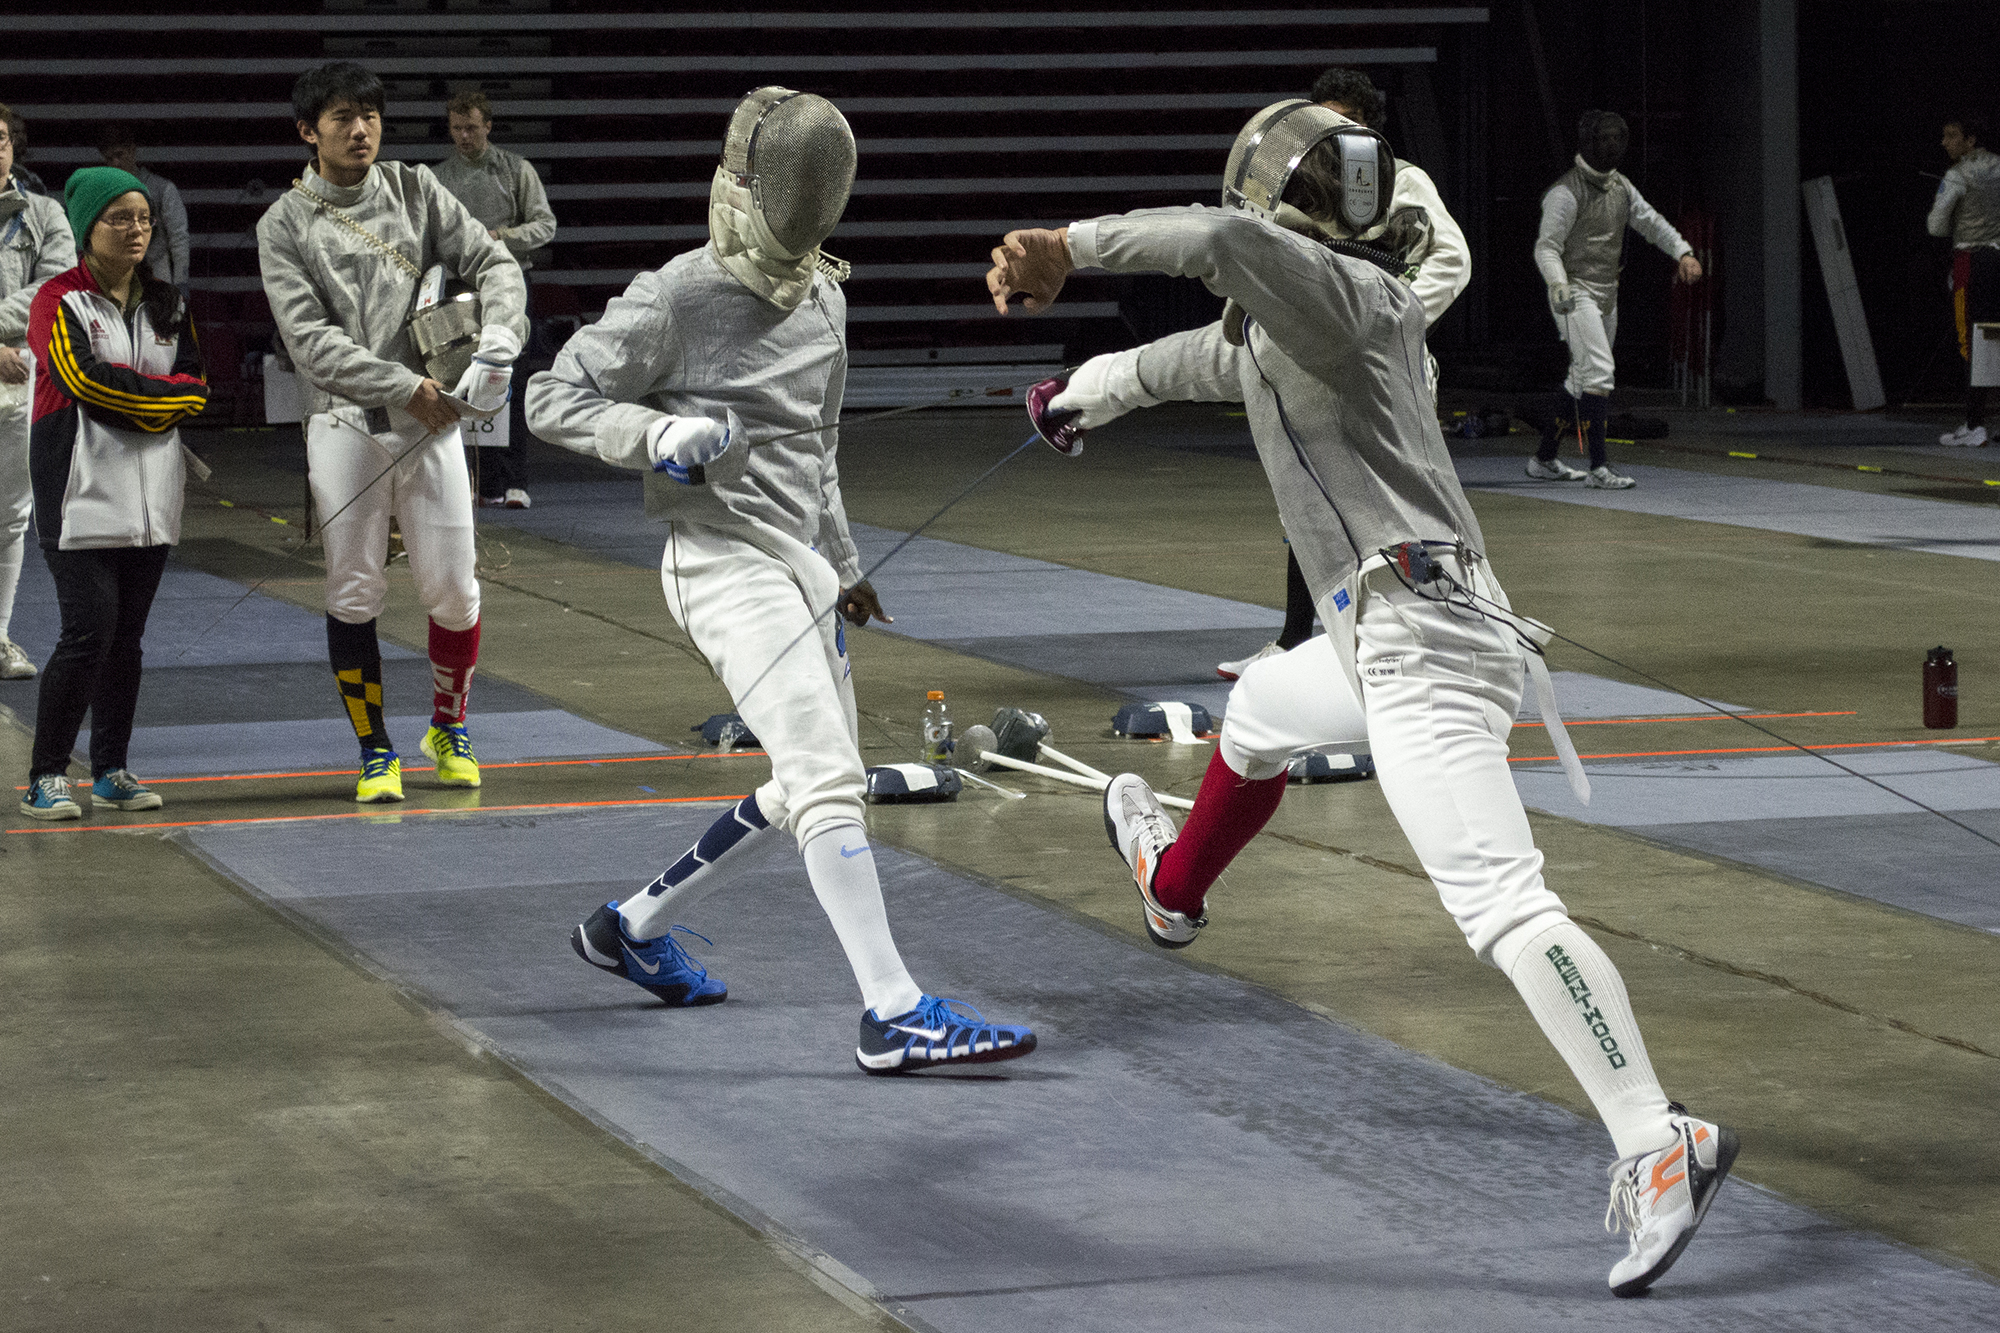 Stony Brook sophomore sabre fencer Braulio Trejo (above, right) competes in the second round of pools at the Temple Open. Trejo would go on to place 52nd out of 72 in the Men's Sabre division. CHRISTOPHER CAMERON/THE STATESMAN